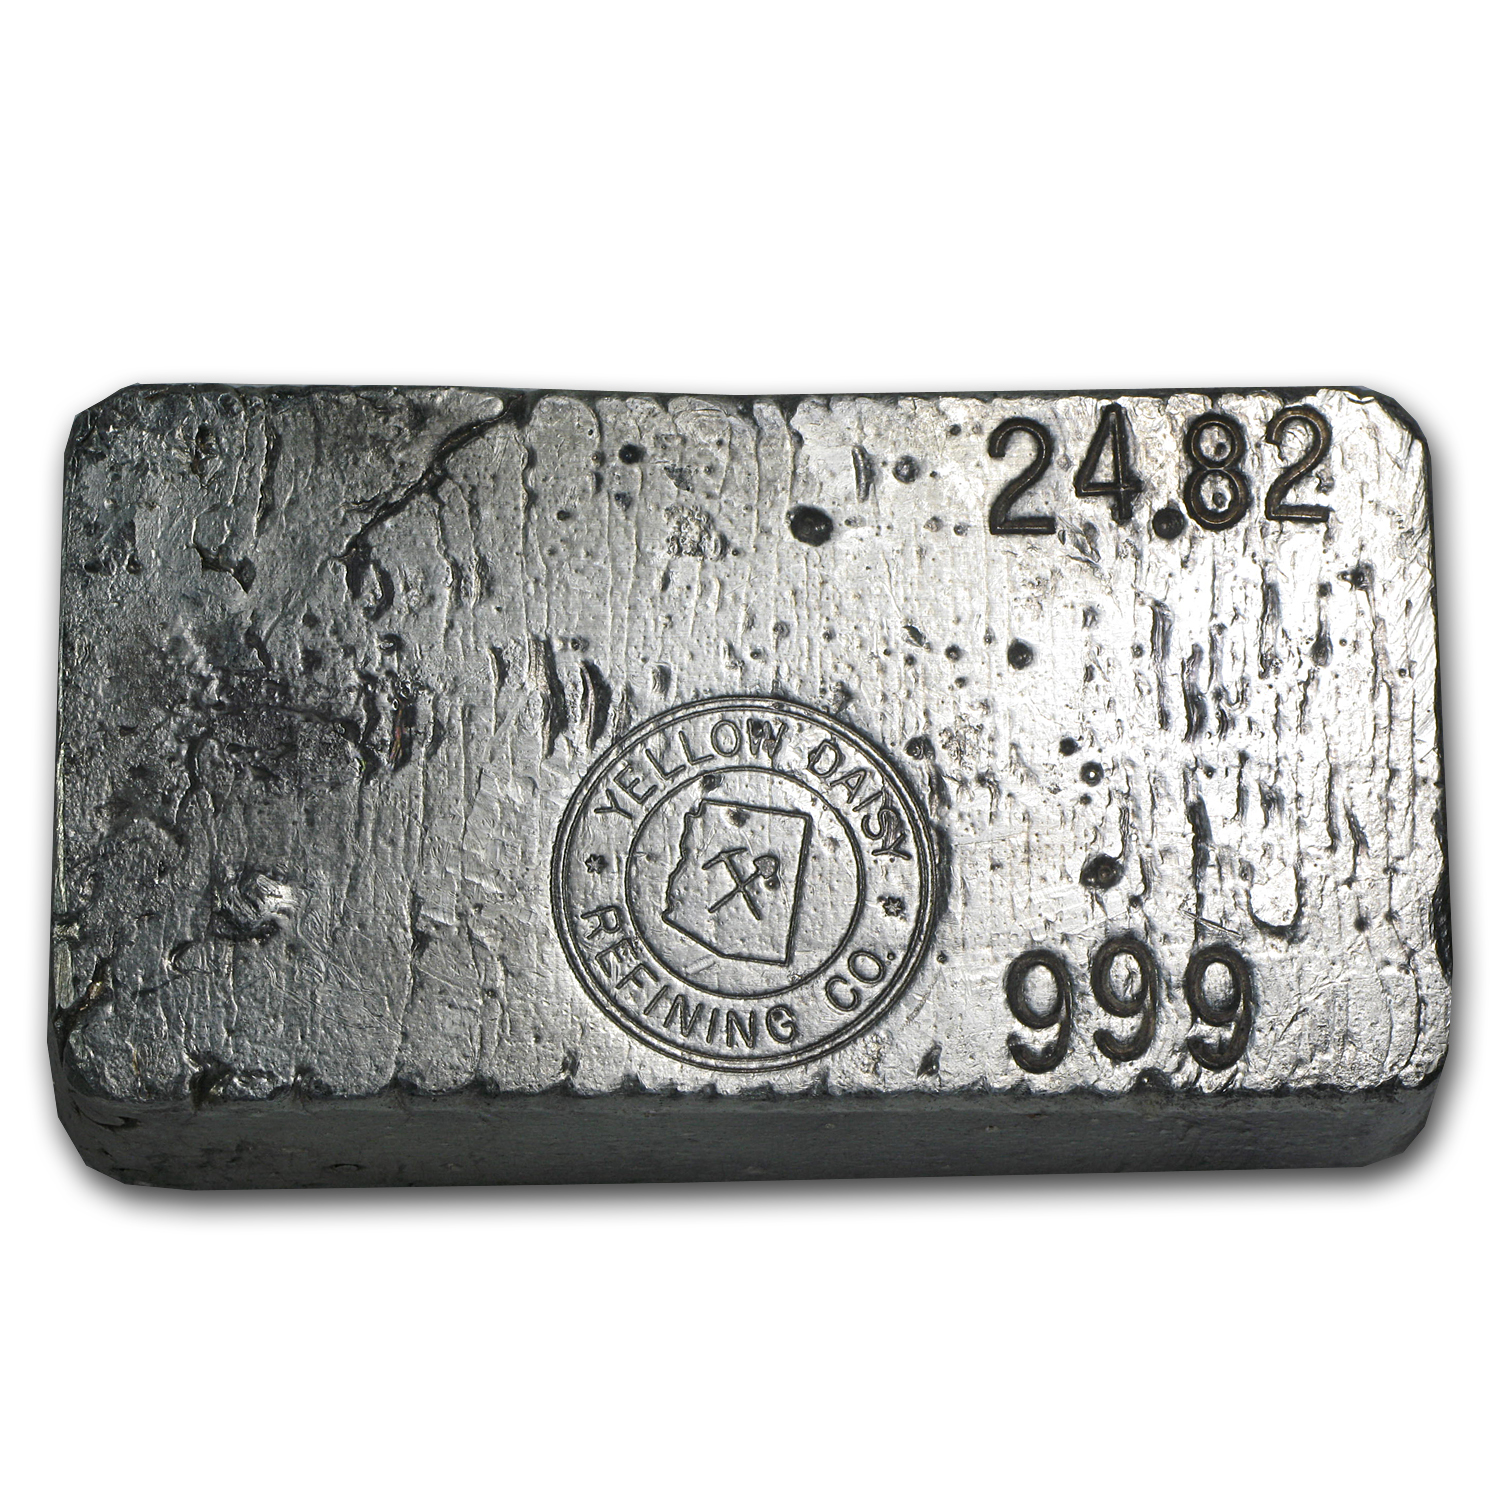 24.82 oz Silver Bars - Yellow Daisy Refining Co.